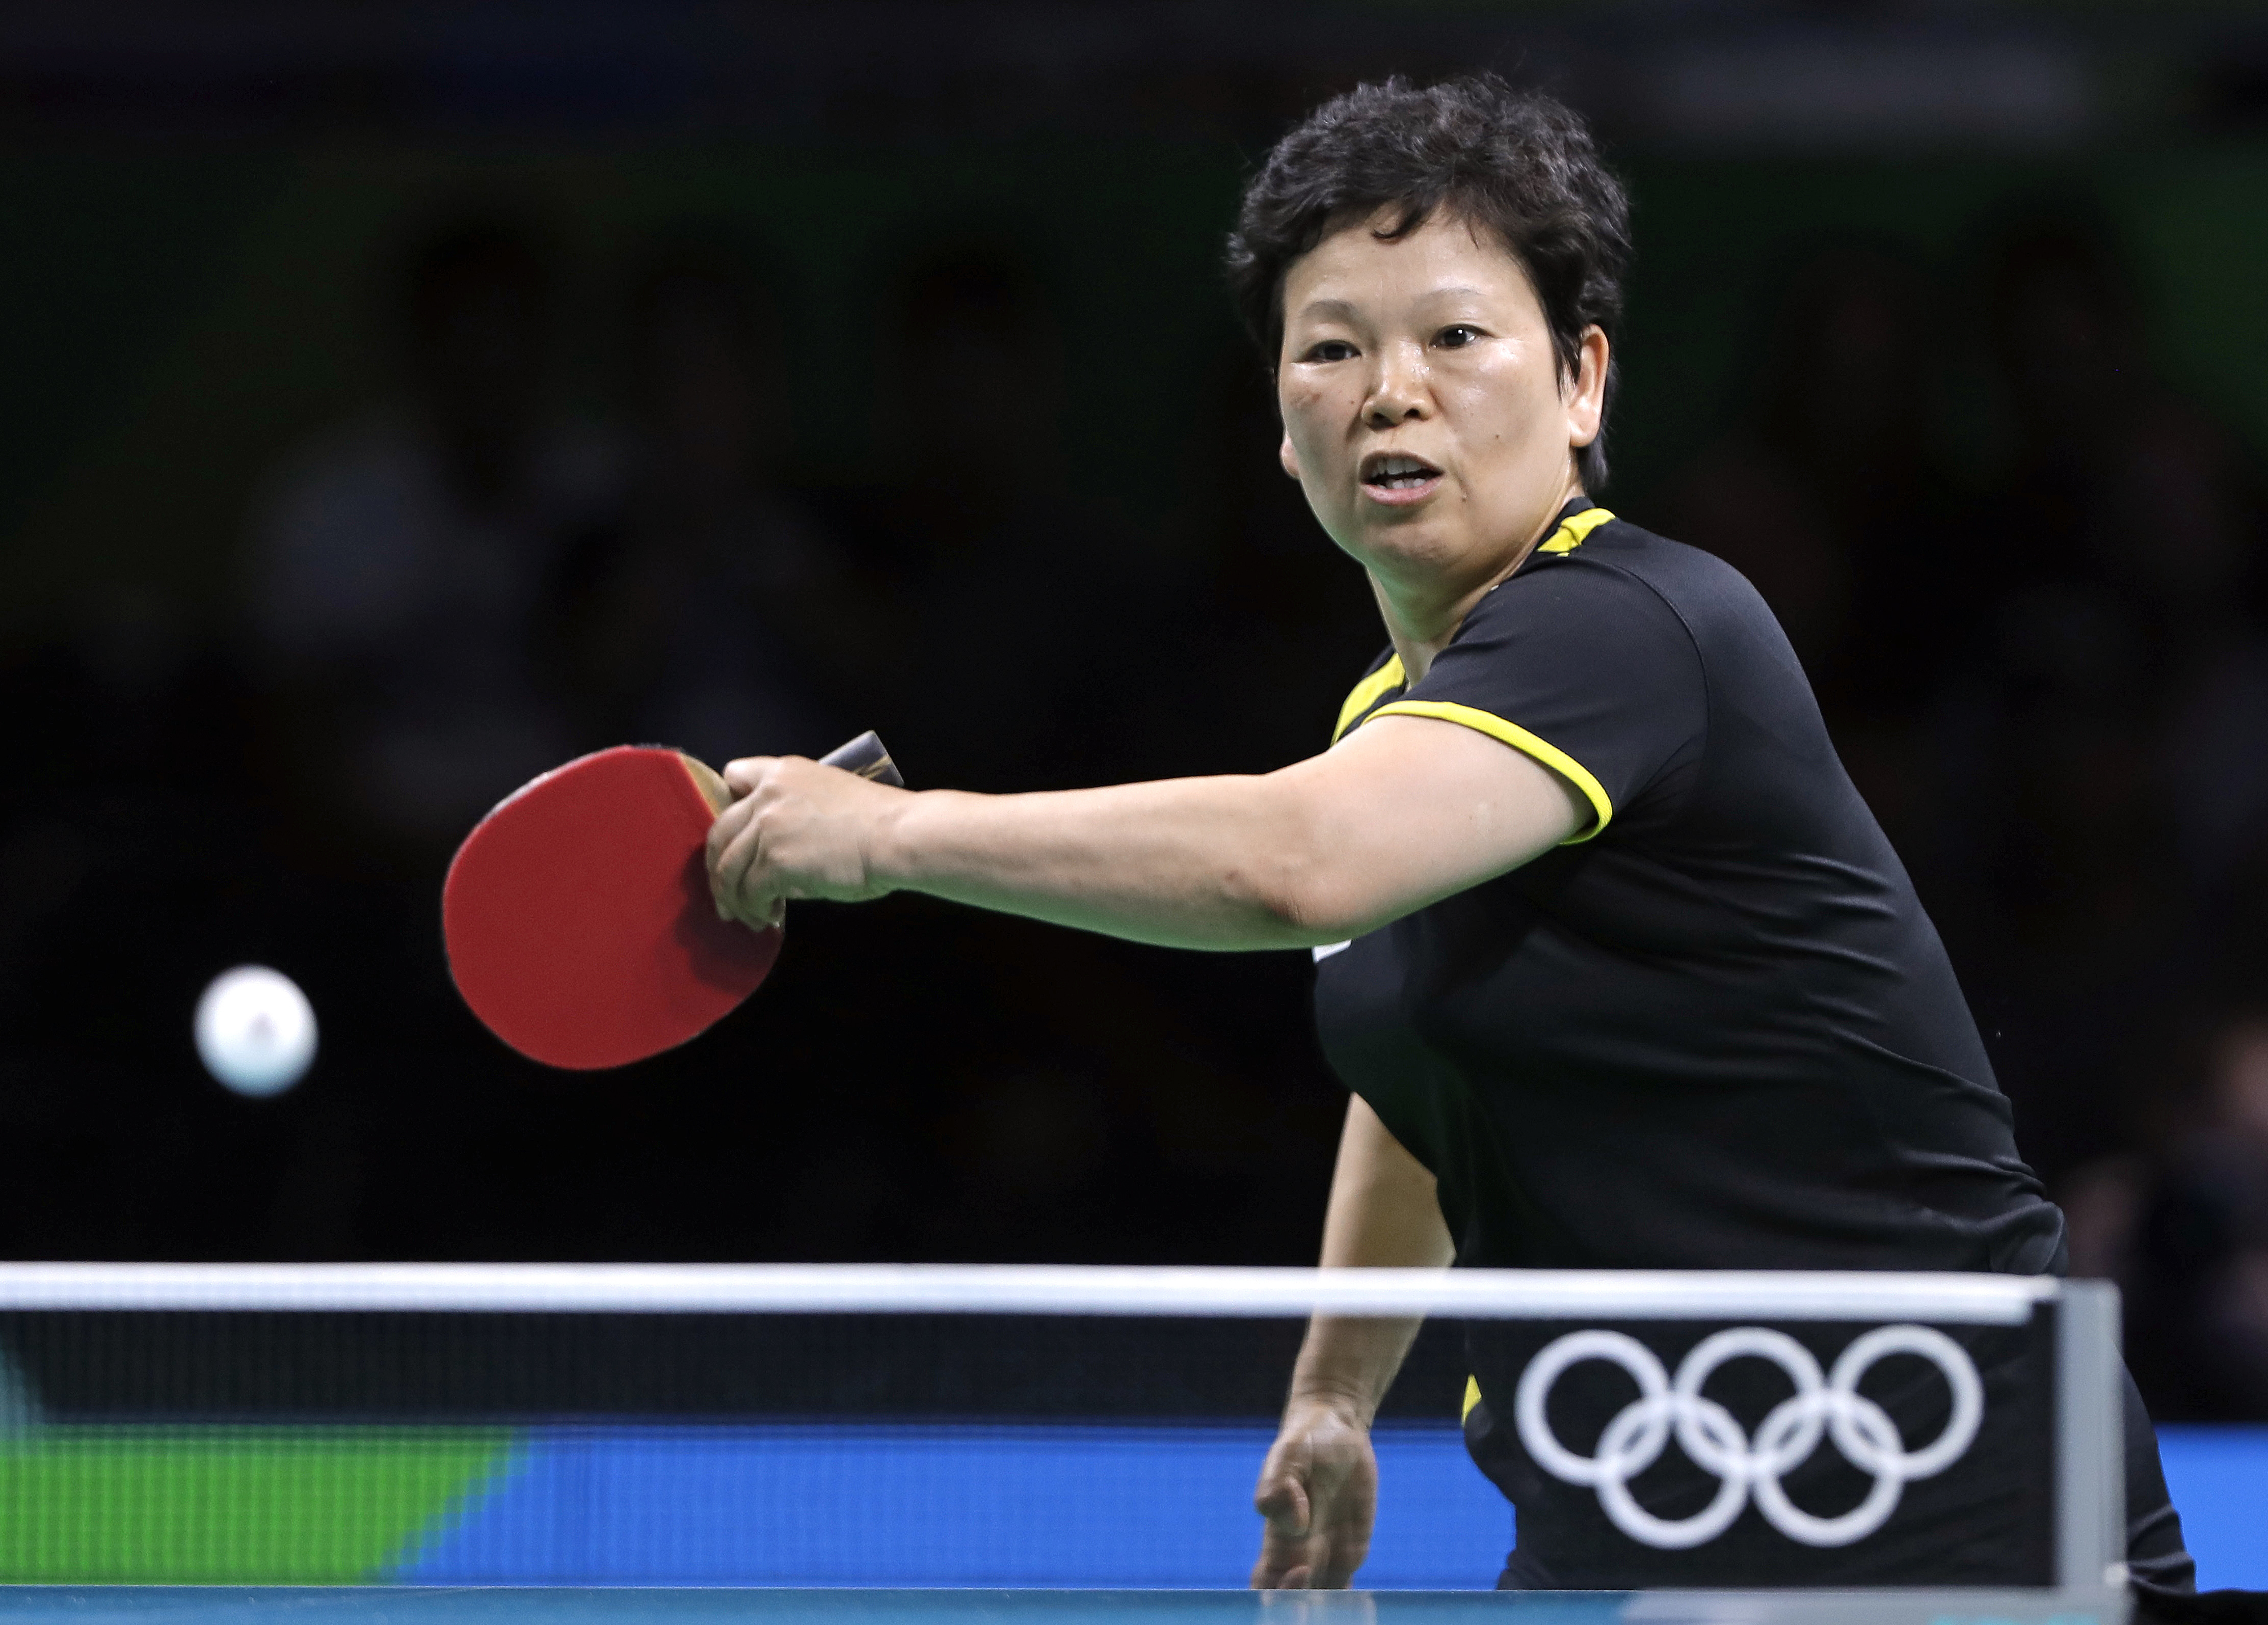 Extreme Ping Pong At The Olympics Table Tennis May Be The Fountain Of Youth Wtop